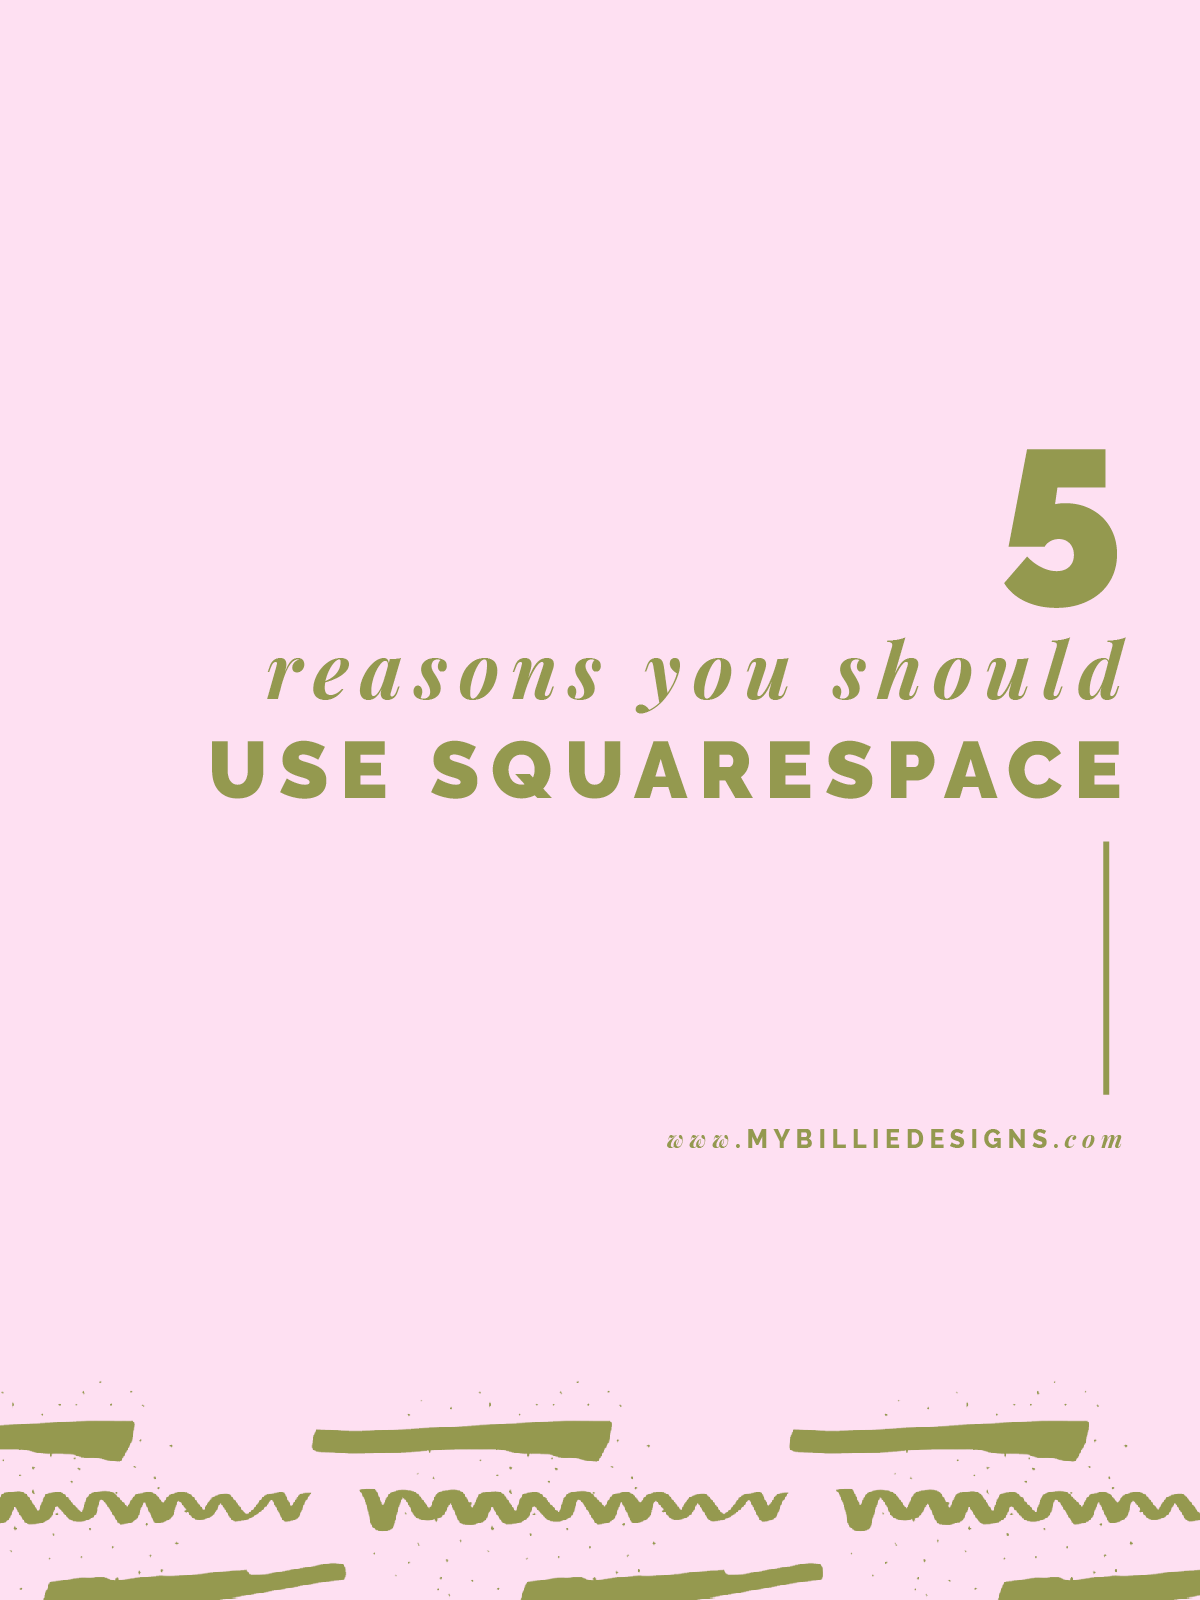 5 reasons you should use squarespace.png